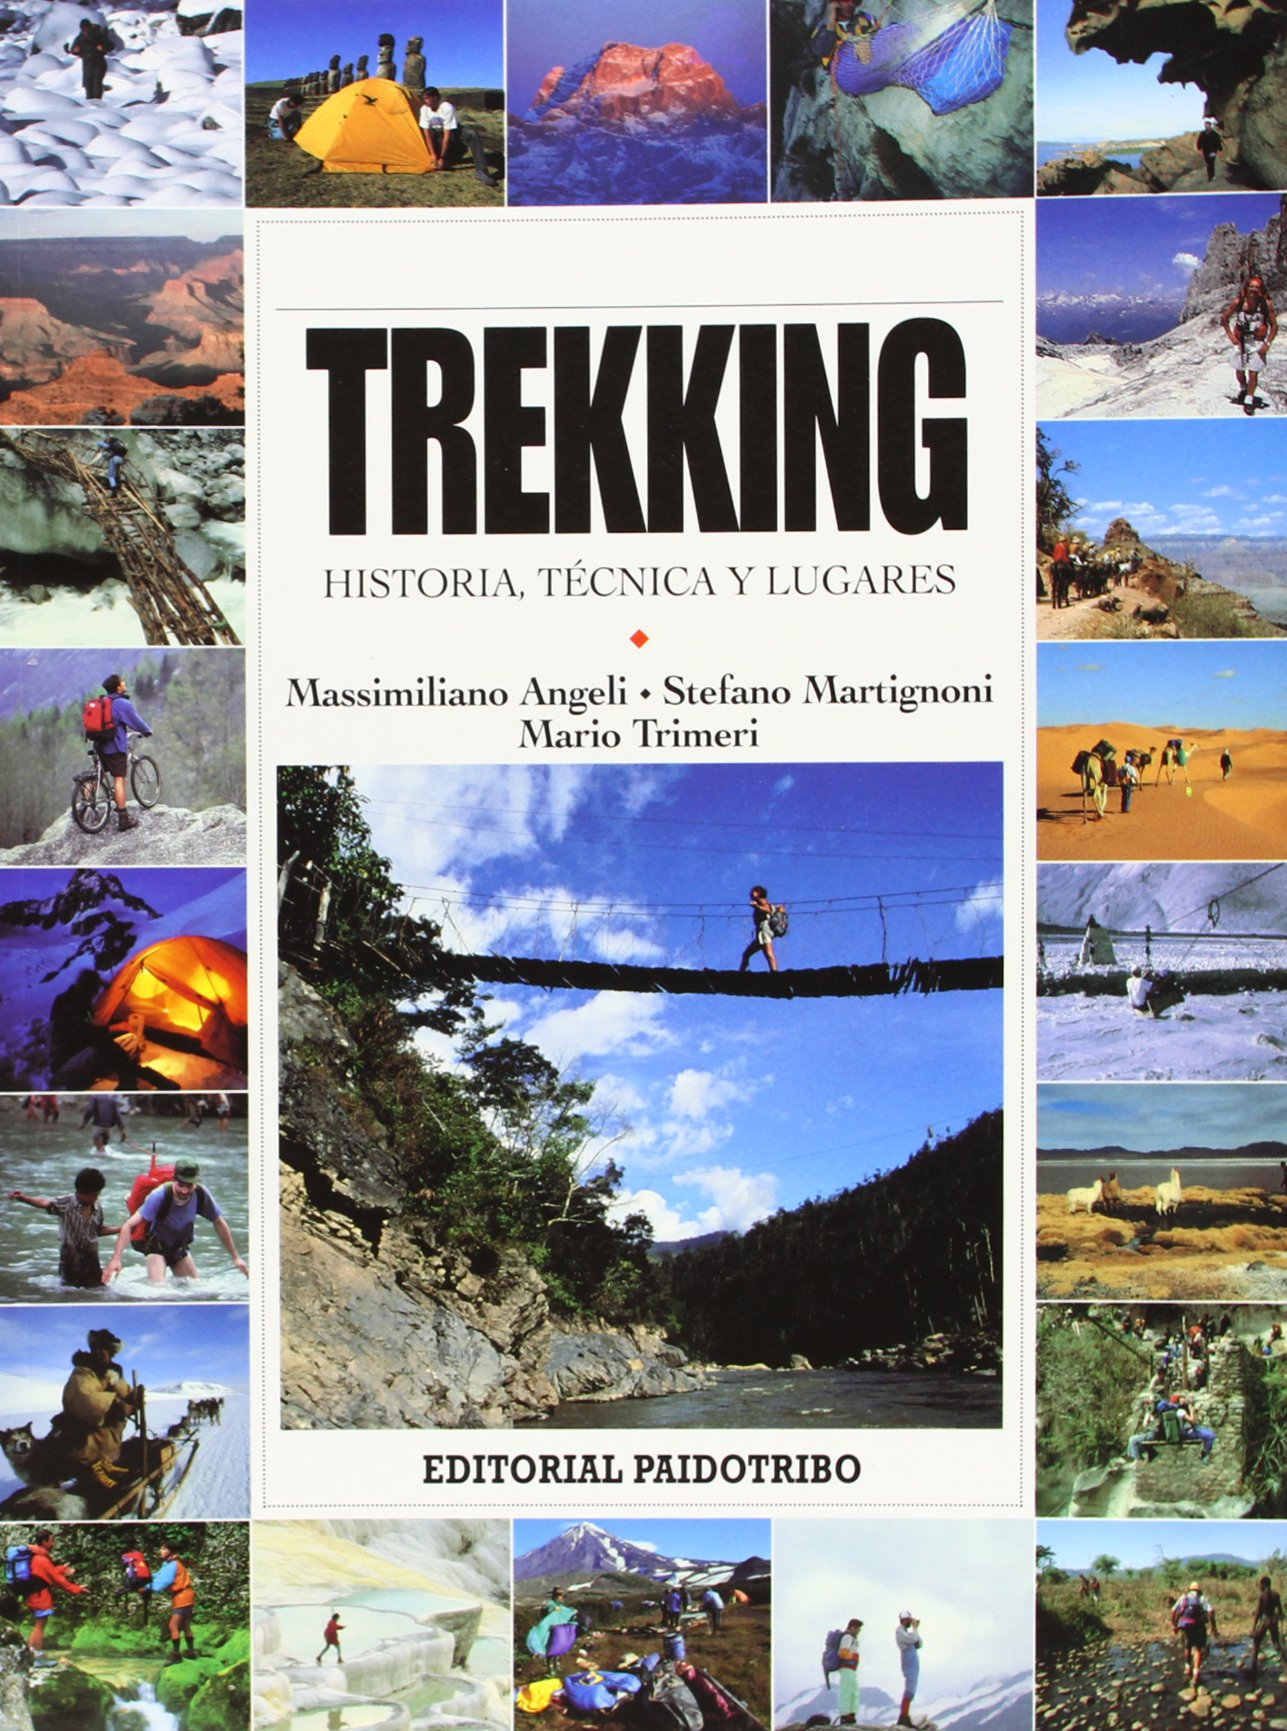 Treakking - Historia, Tecnicas y Lugares (Spanish Edition) by Paidotribo Editorial